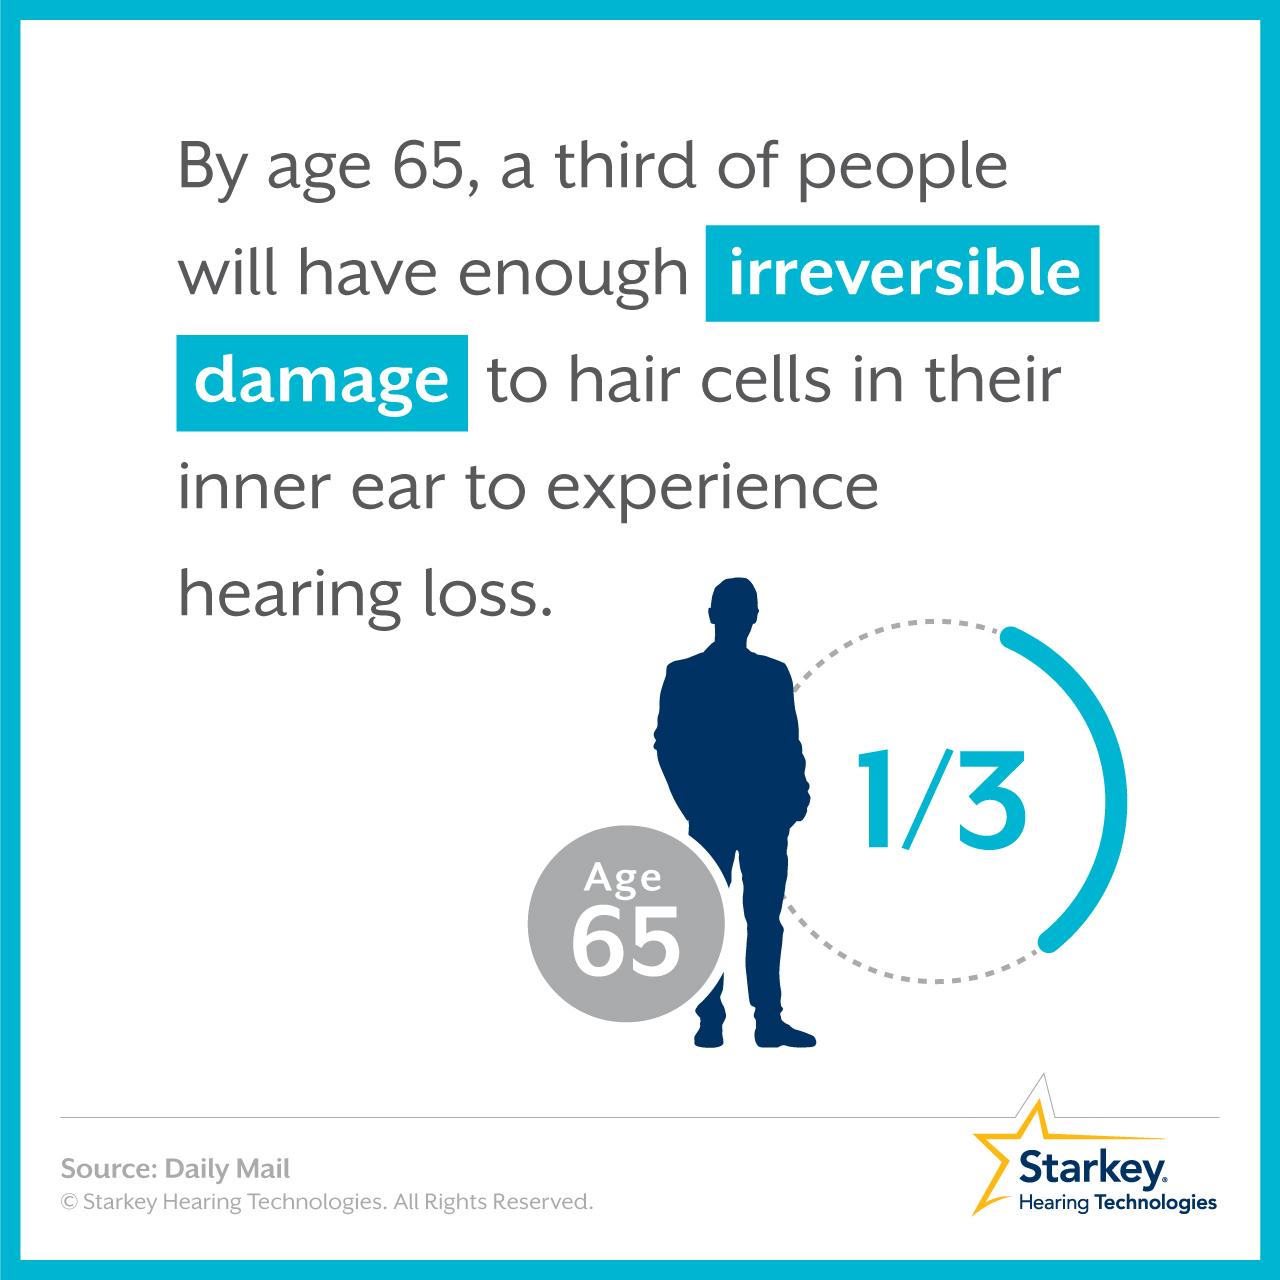 By age 65, a third of people will have enough irreversible damage to hair cells in their inner ear to experience hearing loss.